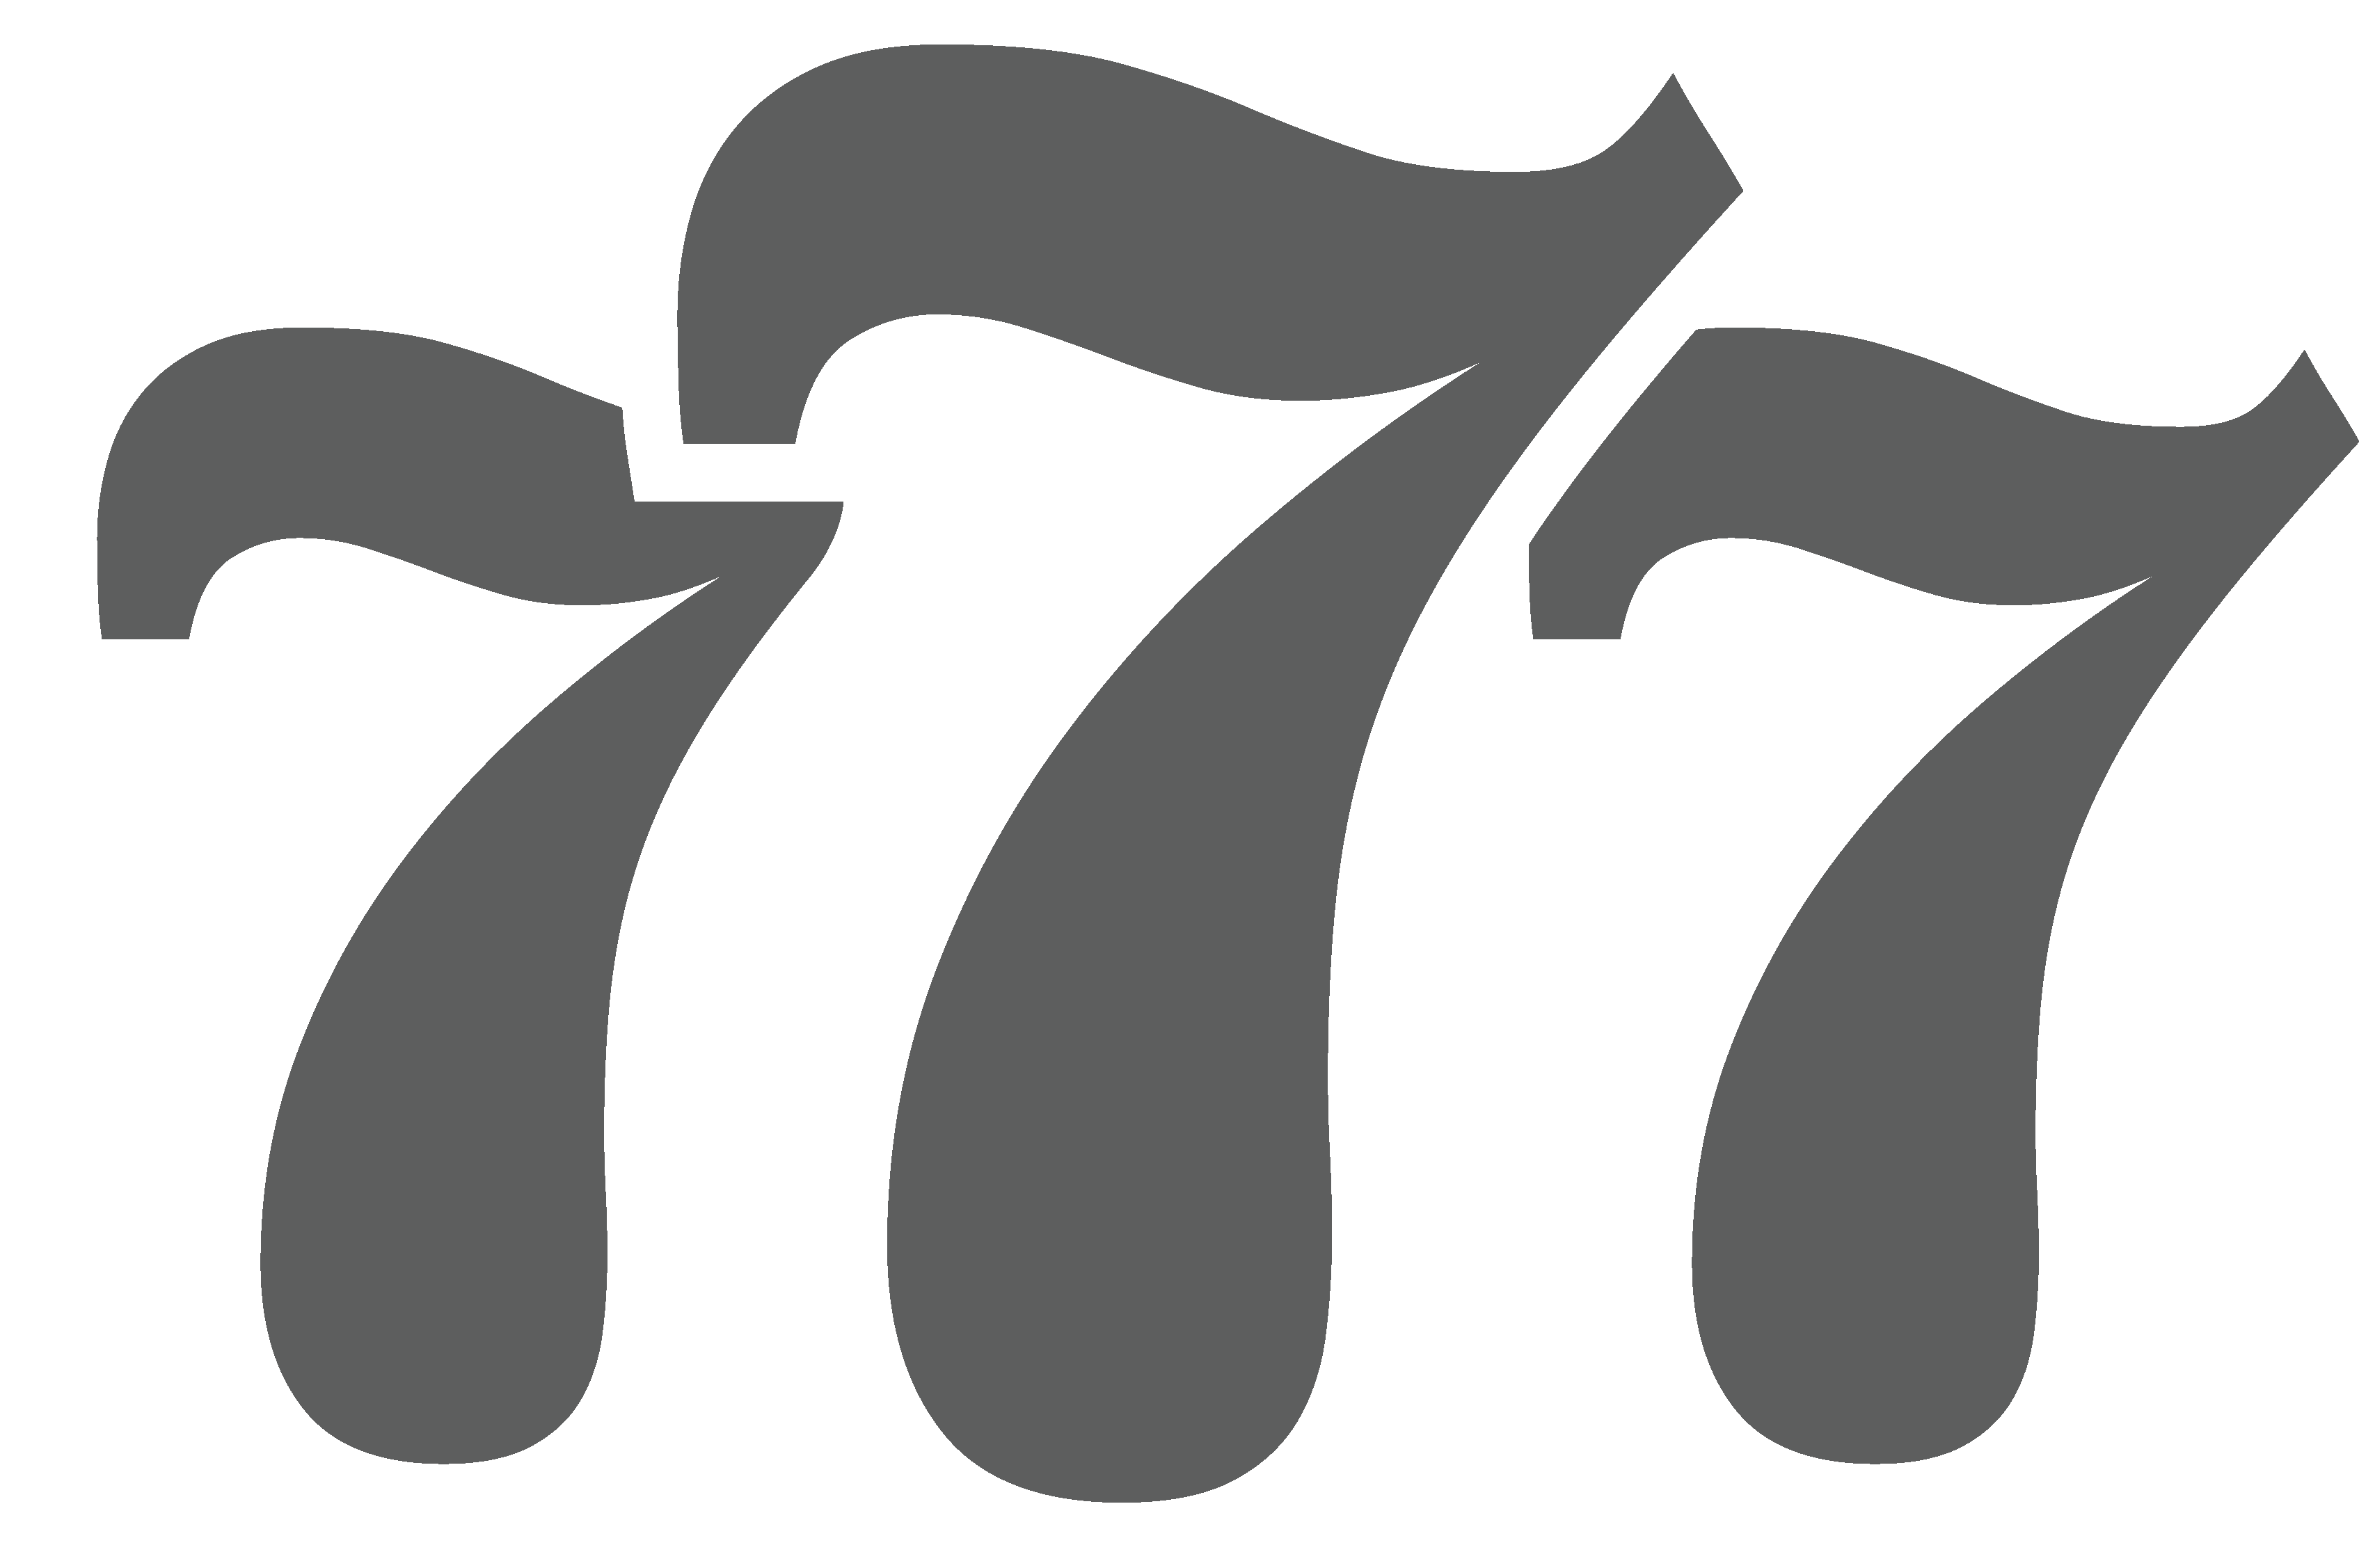 An image of the 777 image